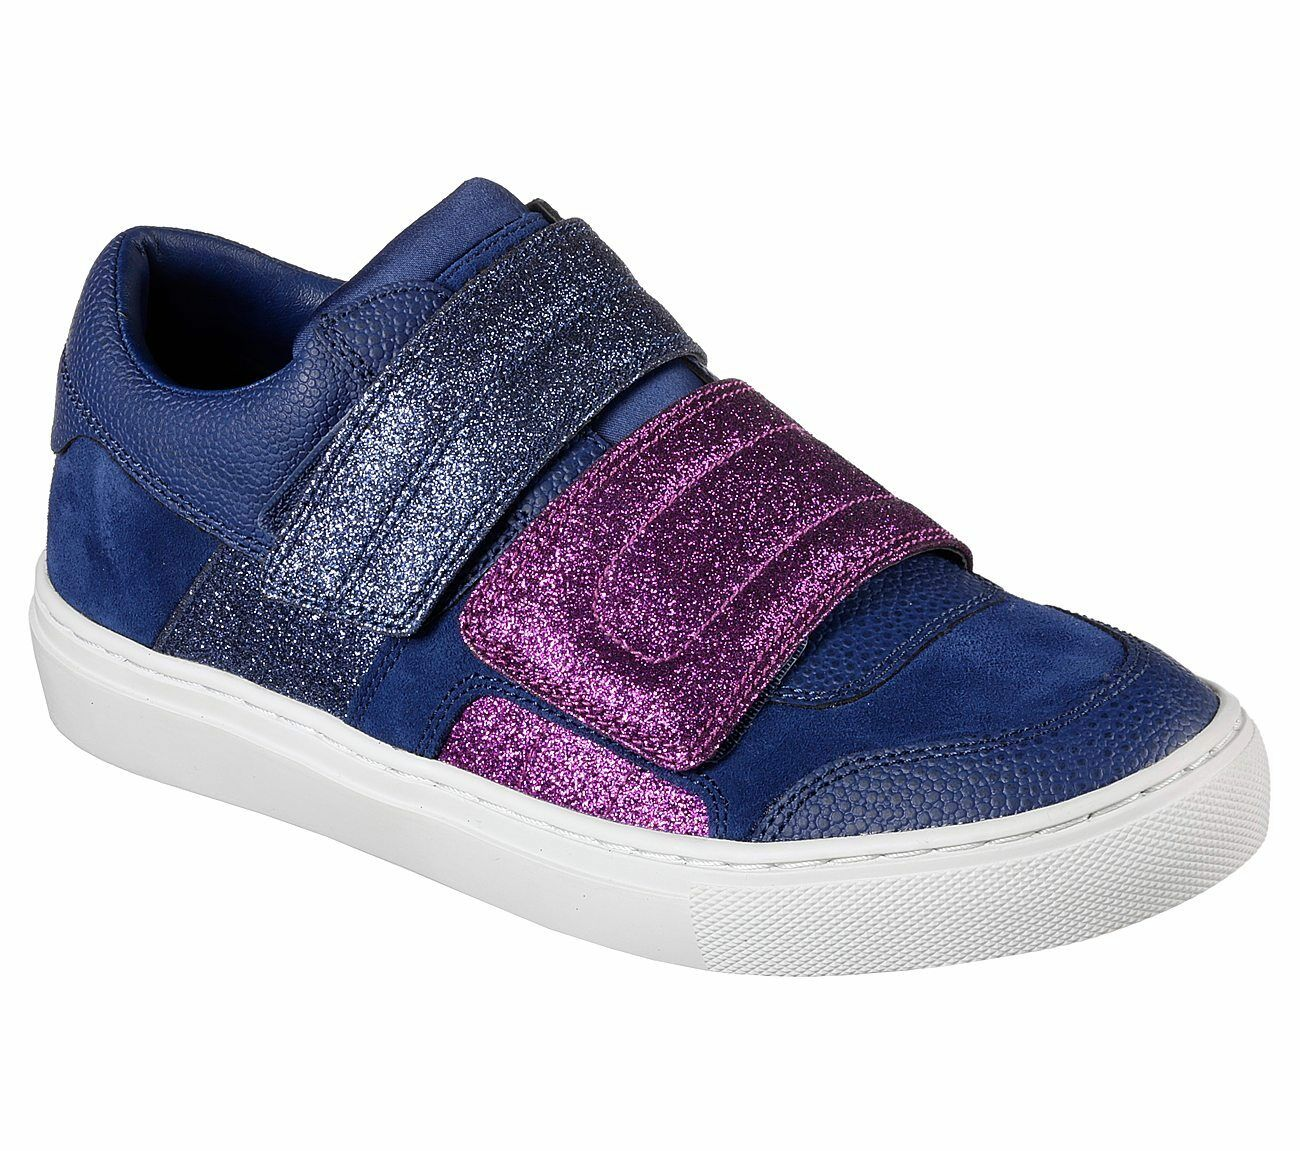 New Womens Glitter shoes Fashion Casual Sneakers 6.5 bluee Purple Velcro Skechers